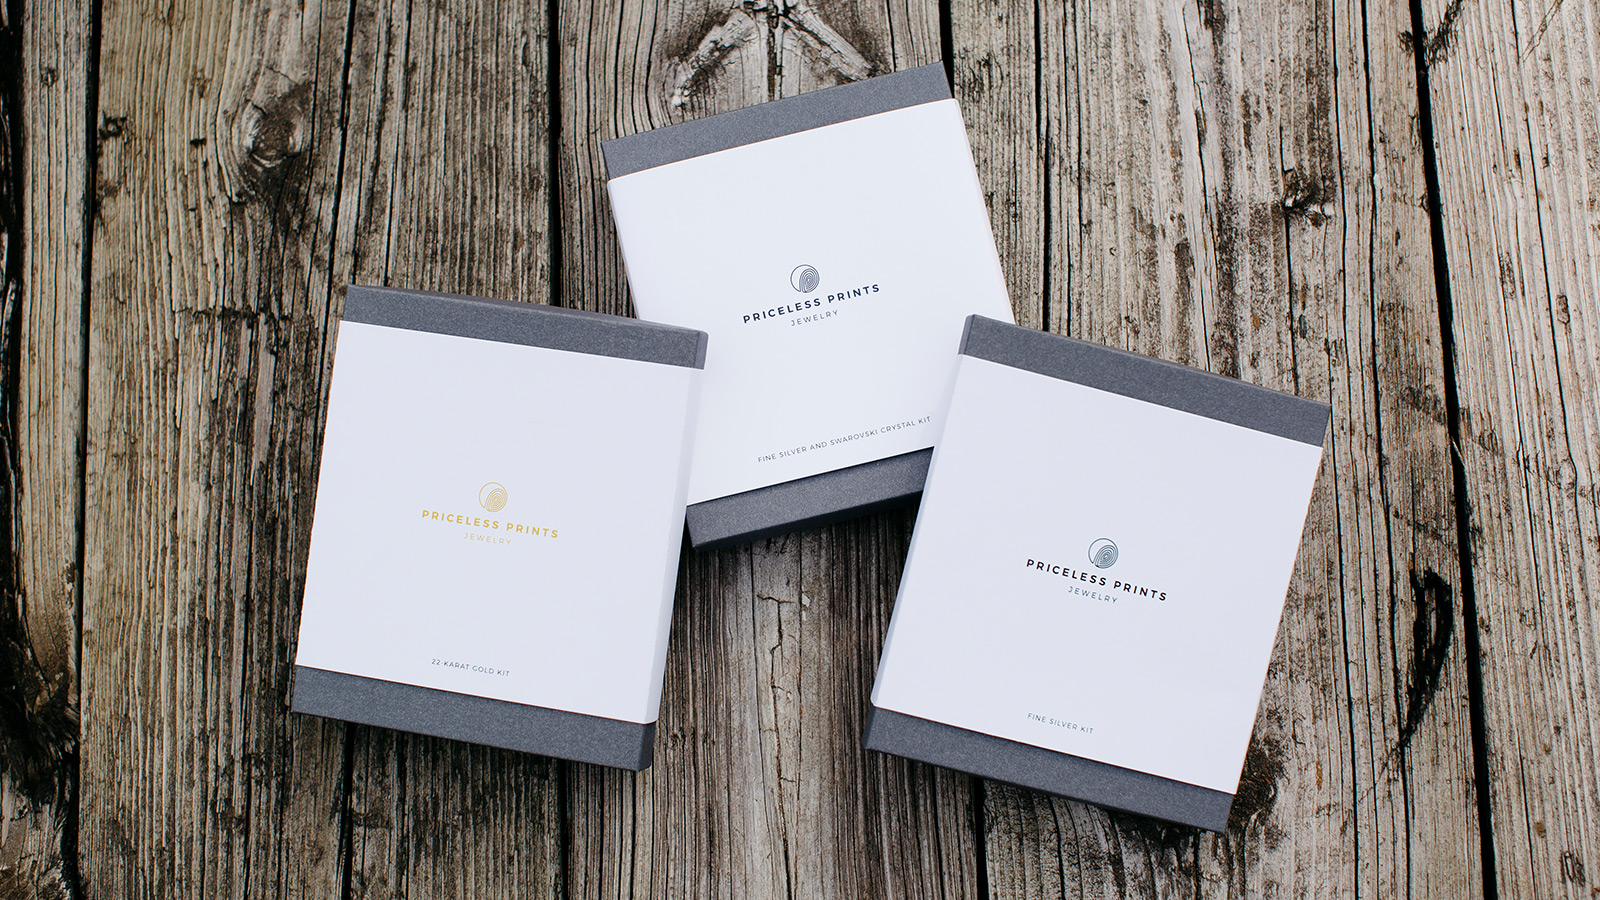 Priceless Prints Jewelry packaging